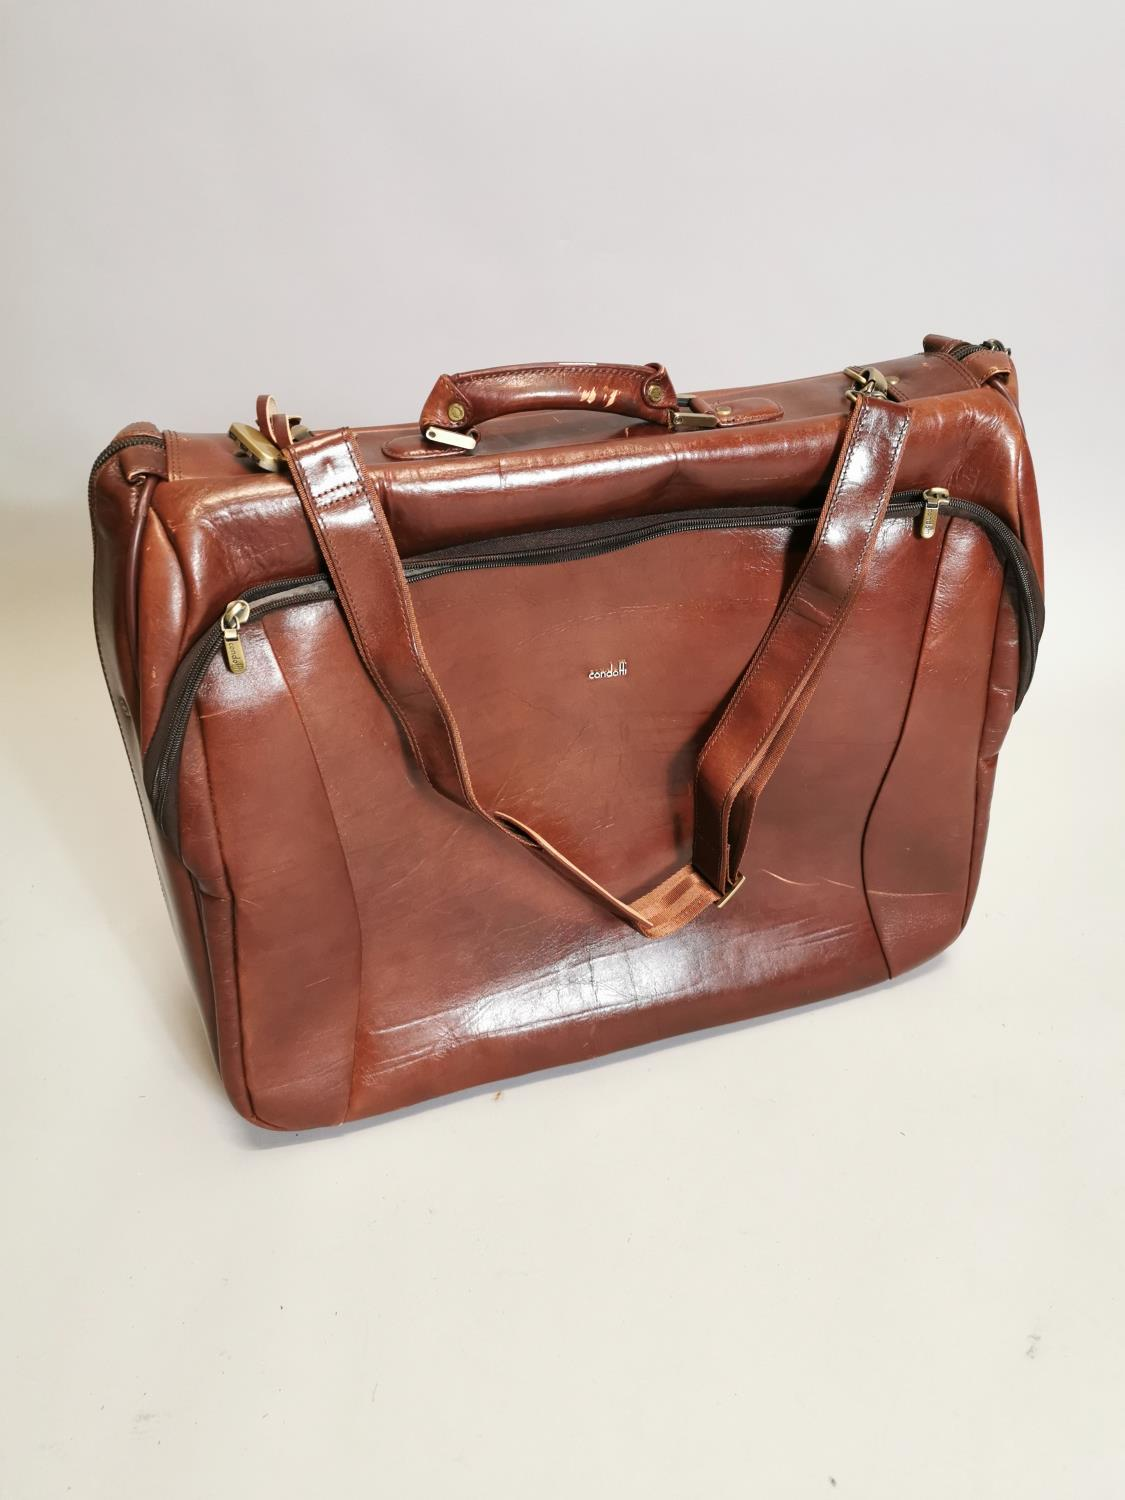 Condoffi gent's leather travel bag - Image 3 of 3